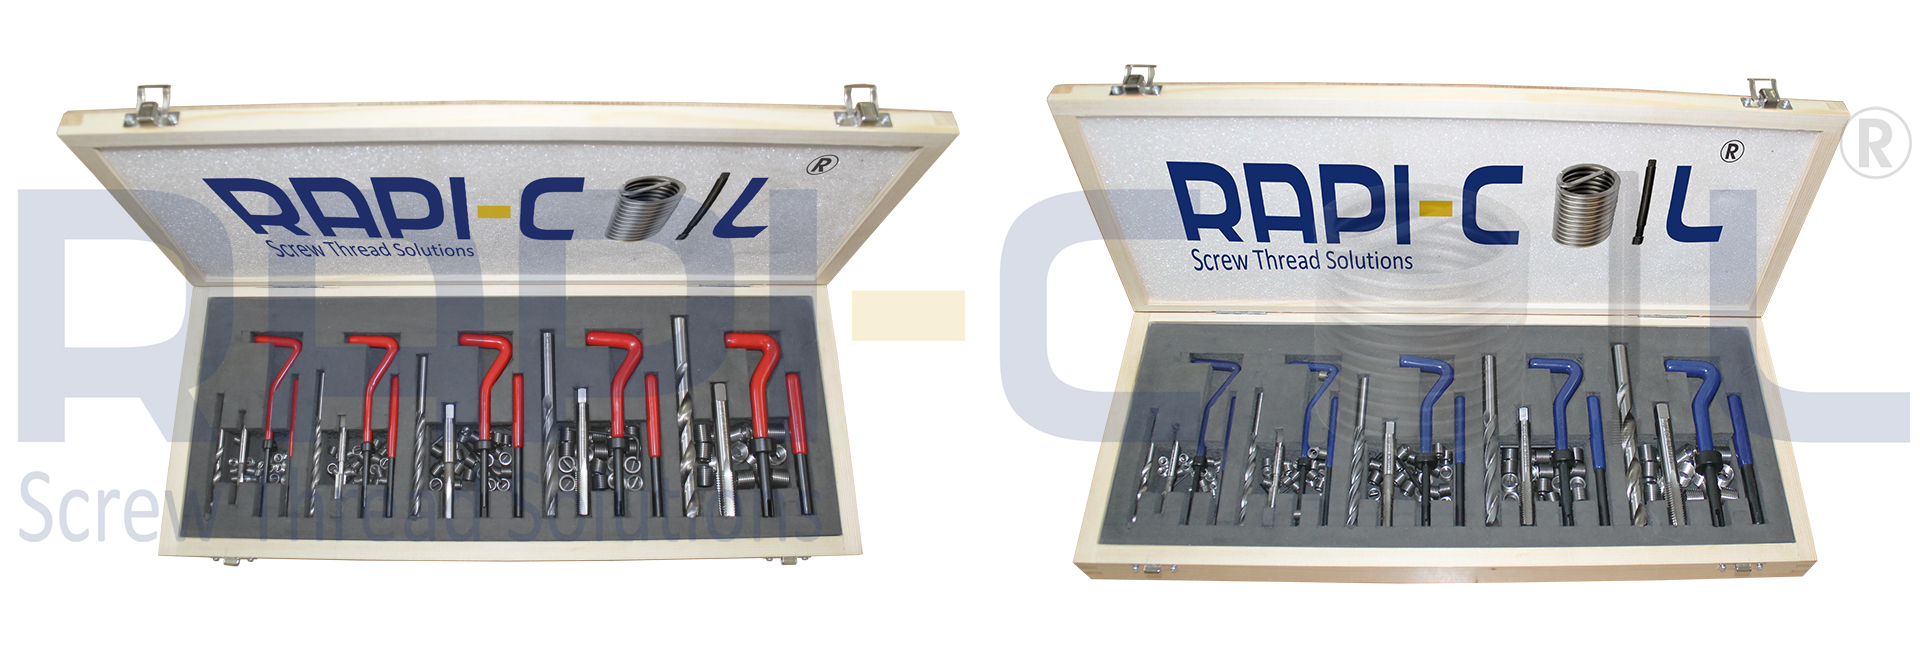 RAPI-COIL threading inserts provide for protecting and strengthening all types of tapped threads.